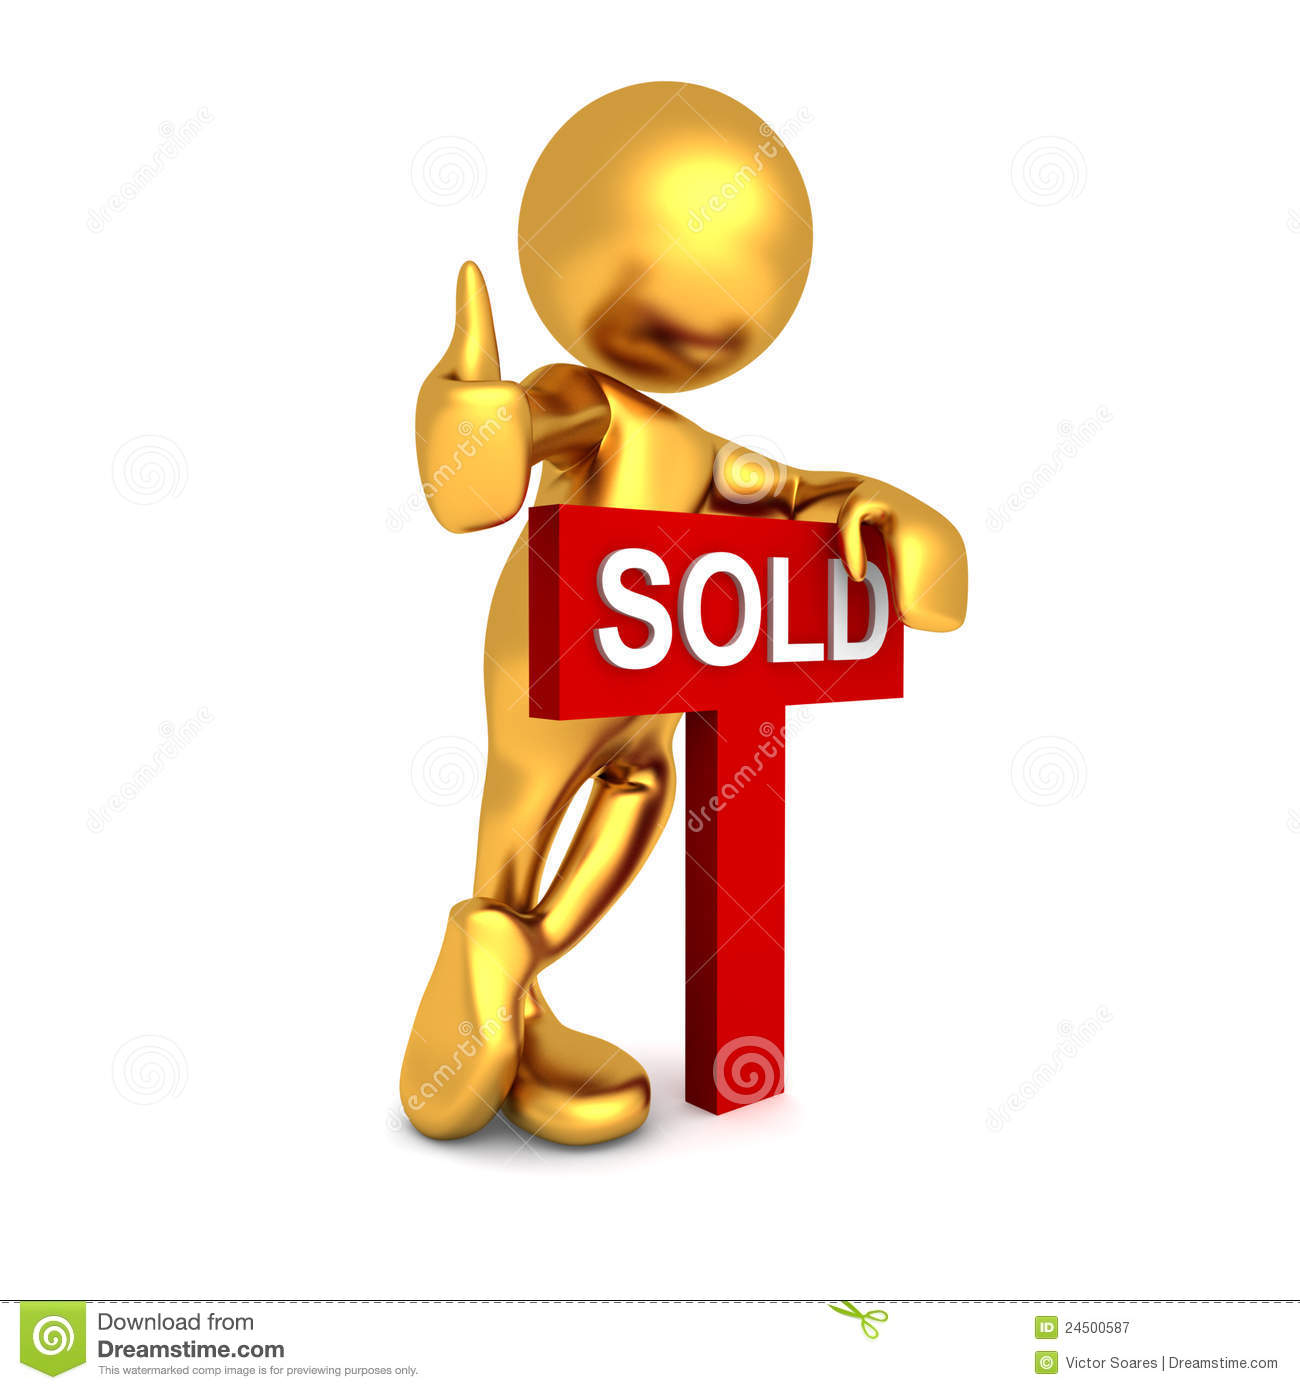 Mr Goldman - Done Deal Royalty Free Stock Photography - Image ...